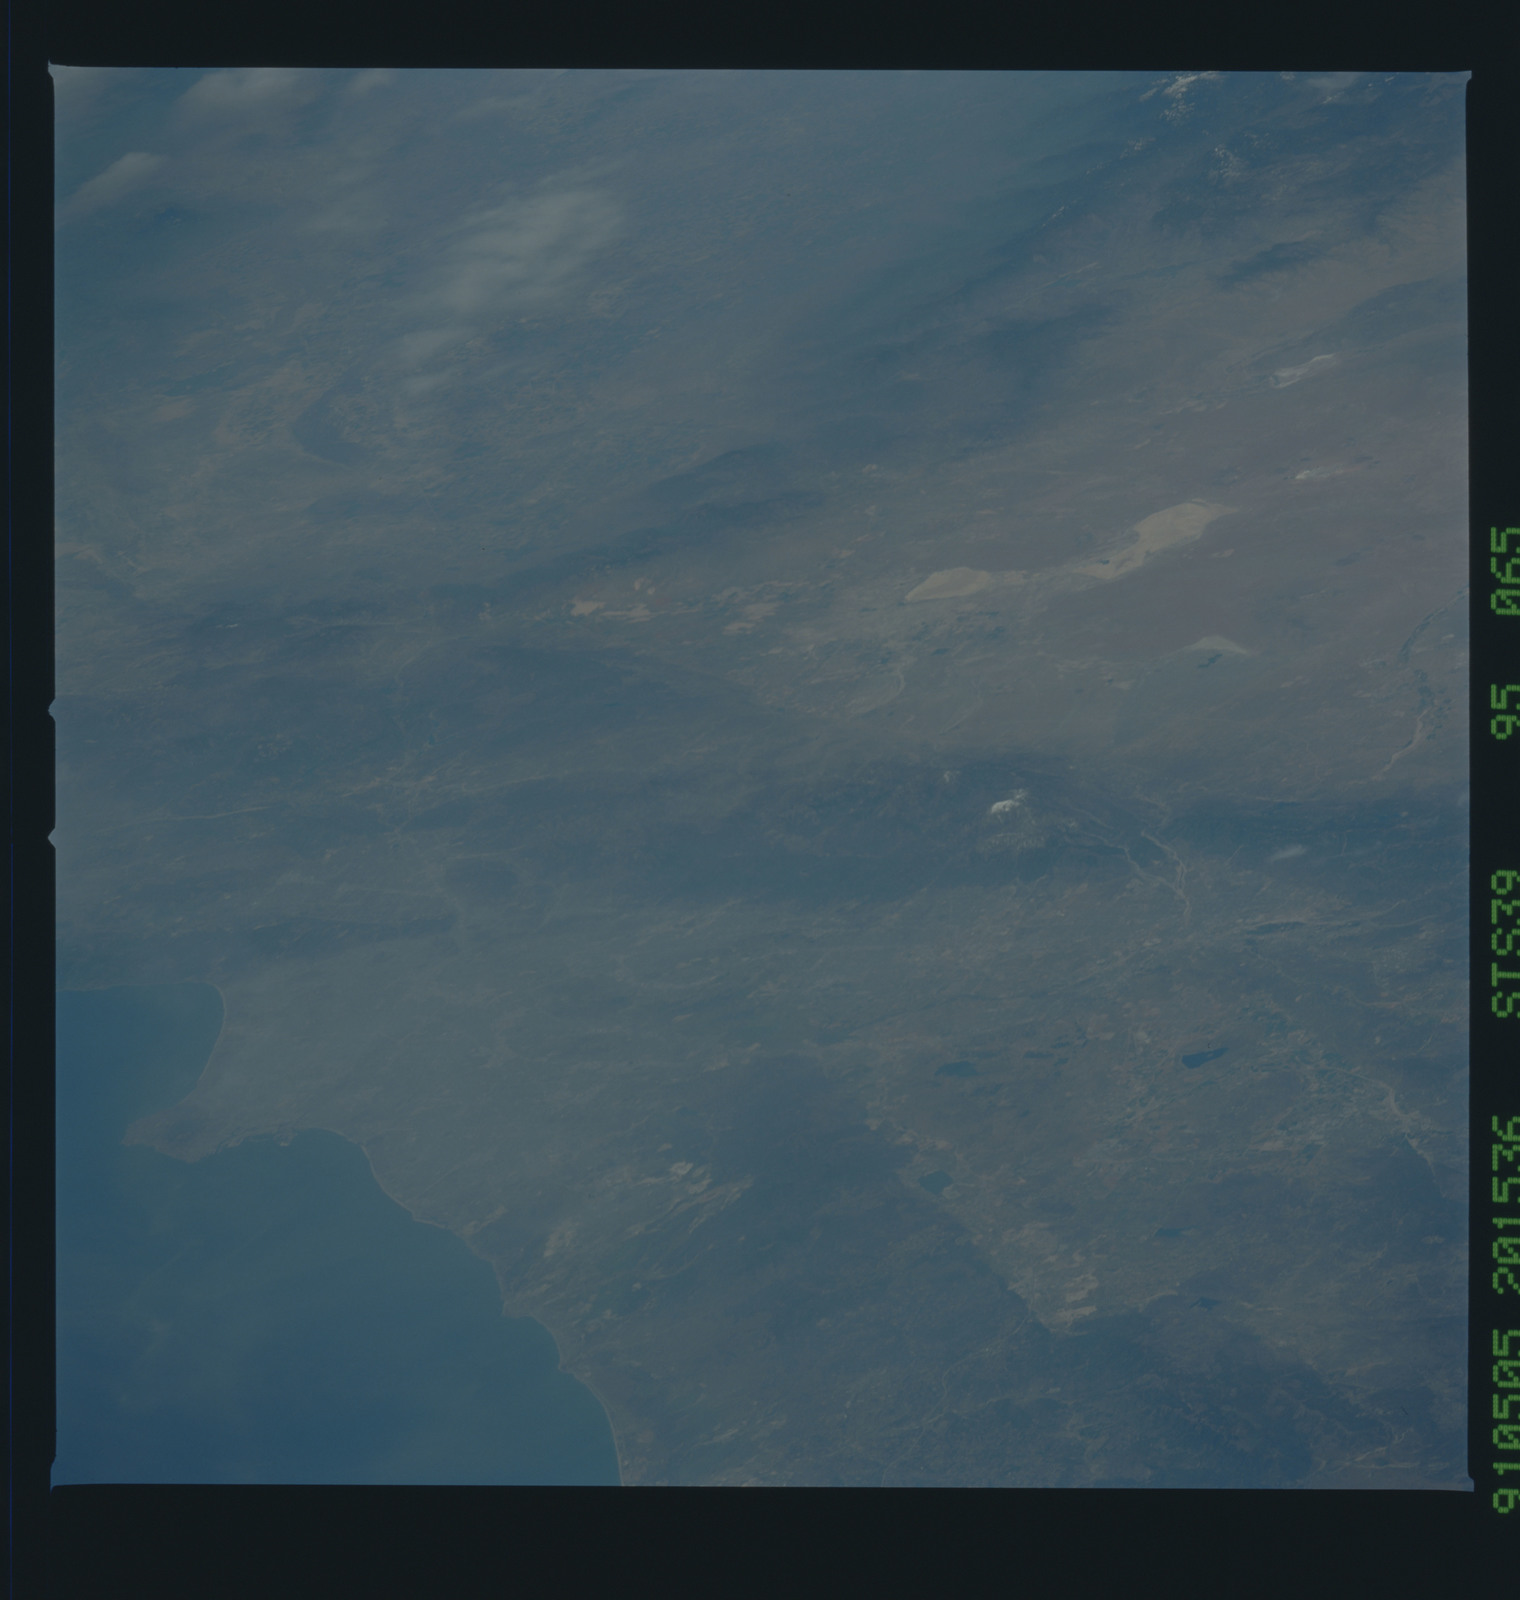 S39-95-065 - STS-039 - STS-39 earth observations